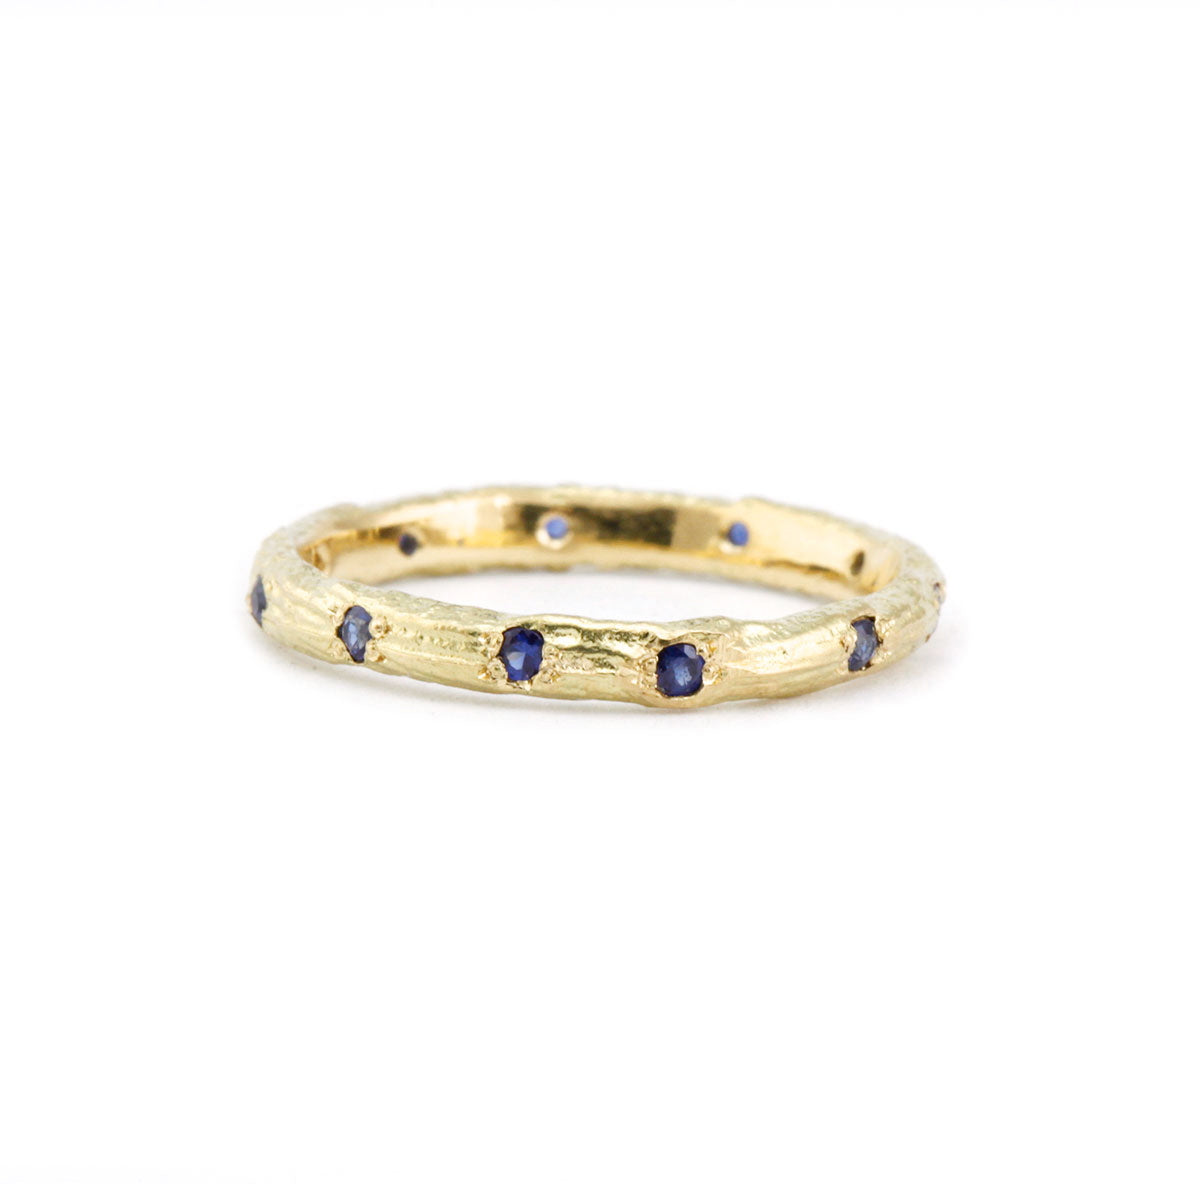 Sapphire wedding ring band organic look